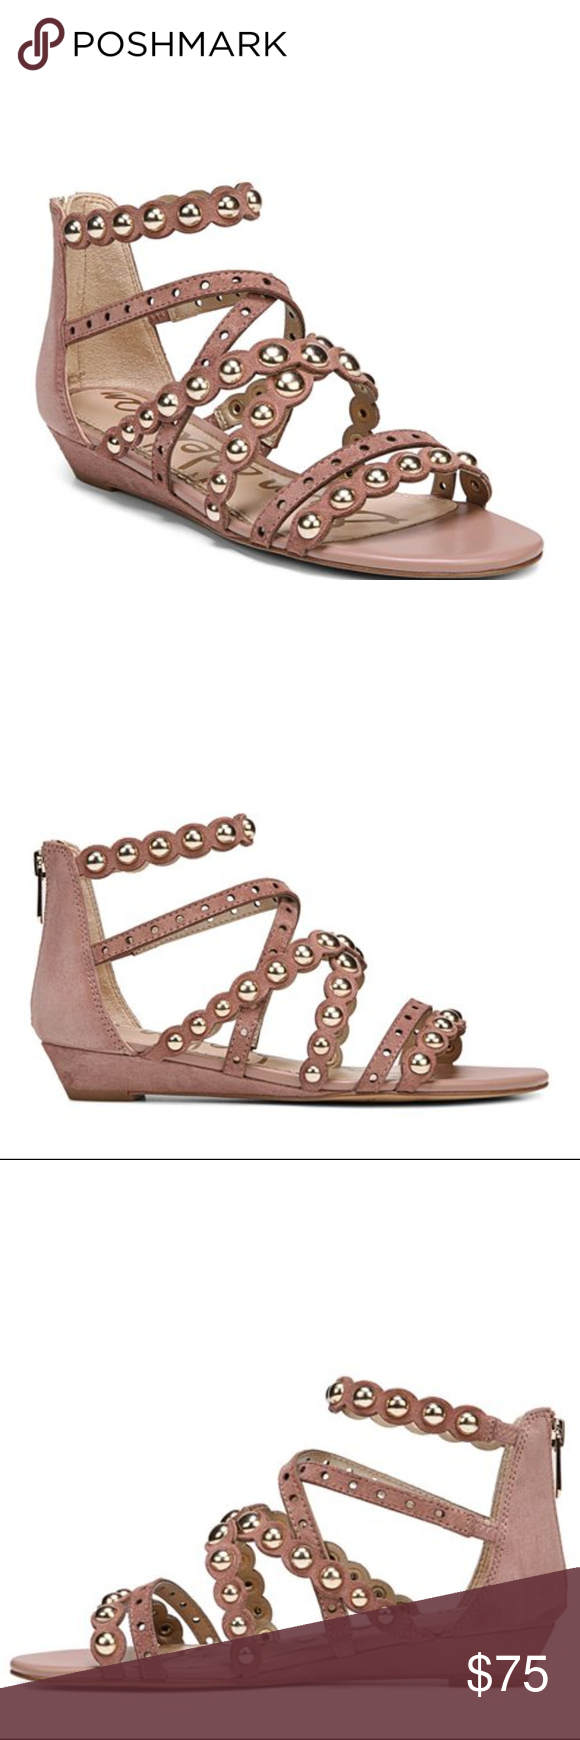 5ffead3a3 Sam Edelman Dustee Studded Suede Gladiator Sandals New without Box Sam  Edelman Women s Dustee Studded Suede